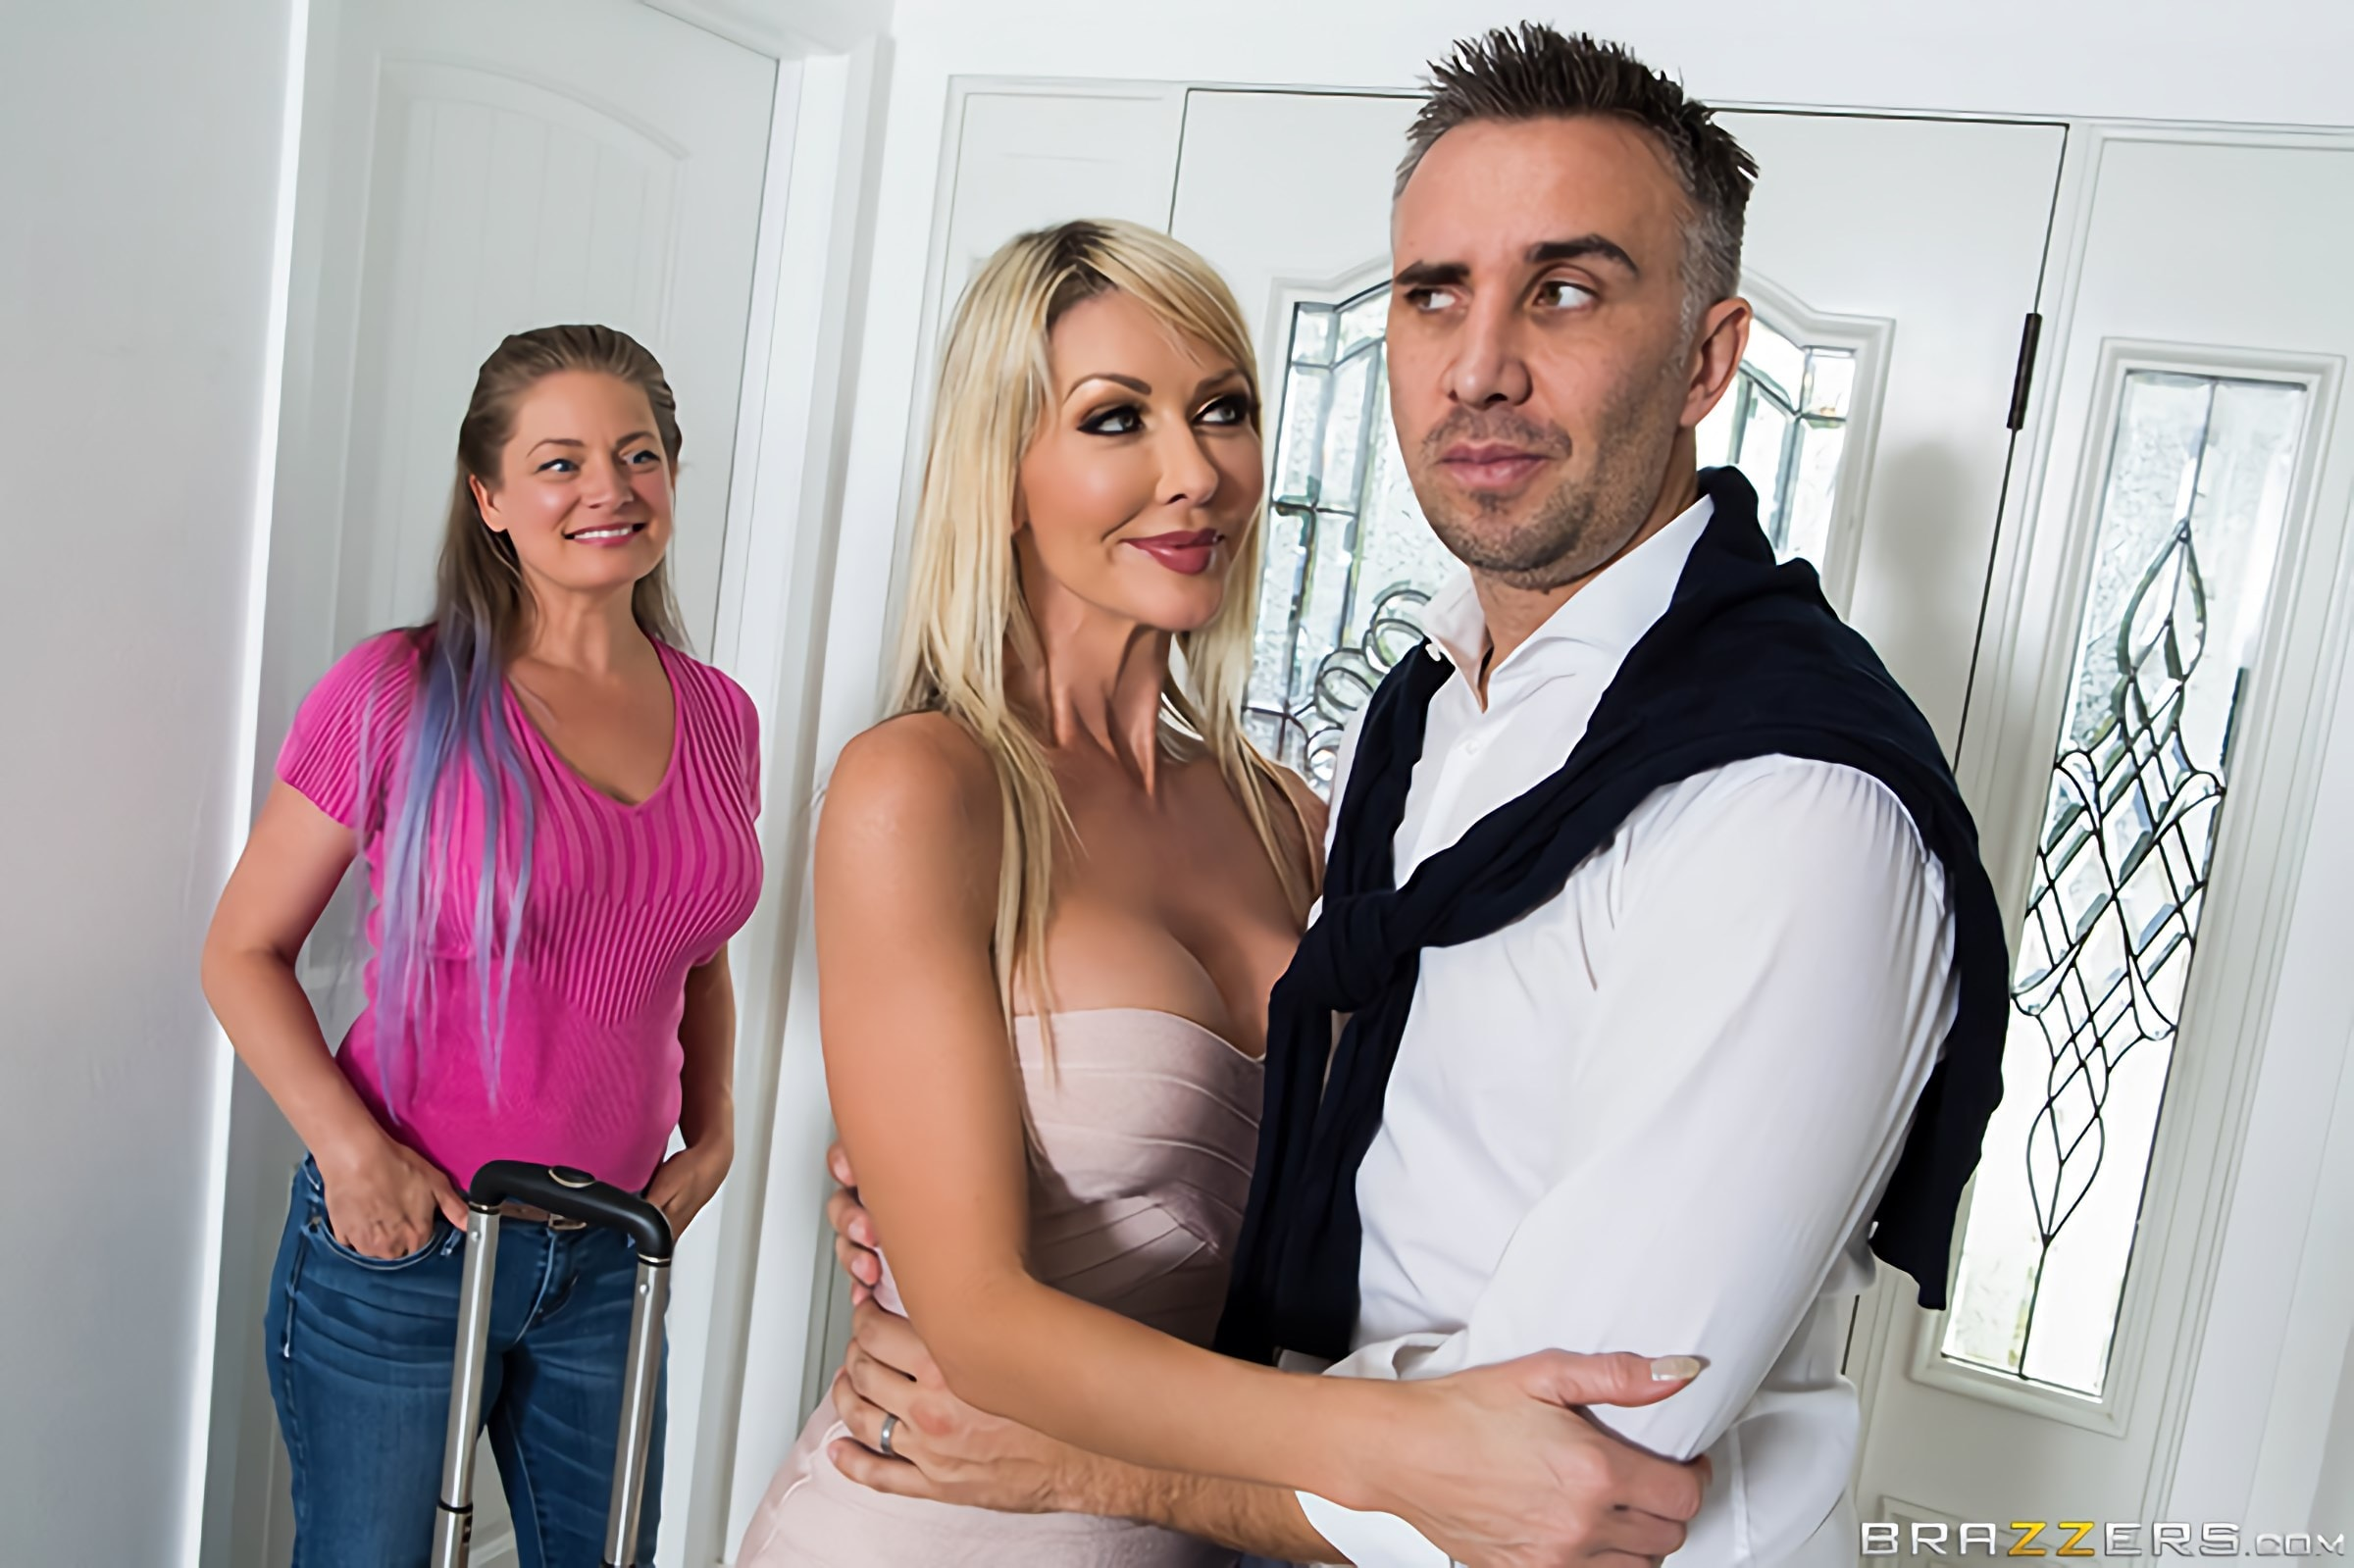 Brazzers 'My Wifes Sister' starring Tylo Duran (Photo 1)